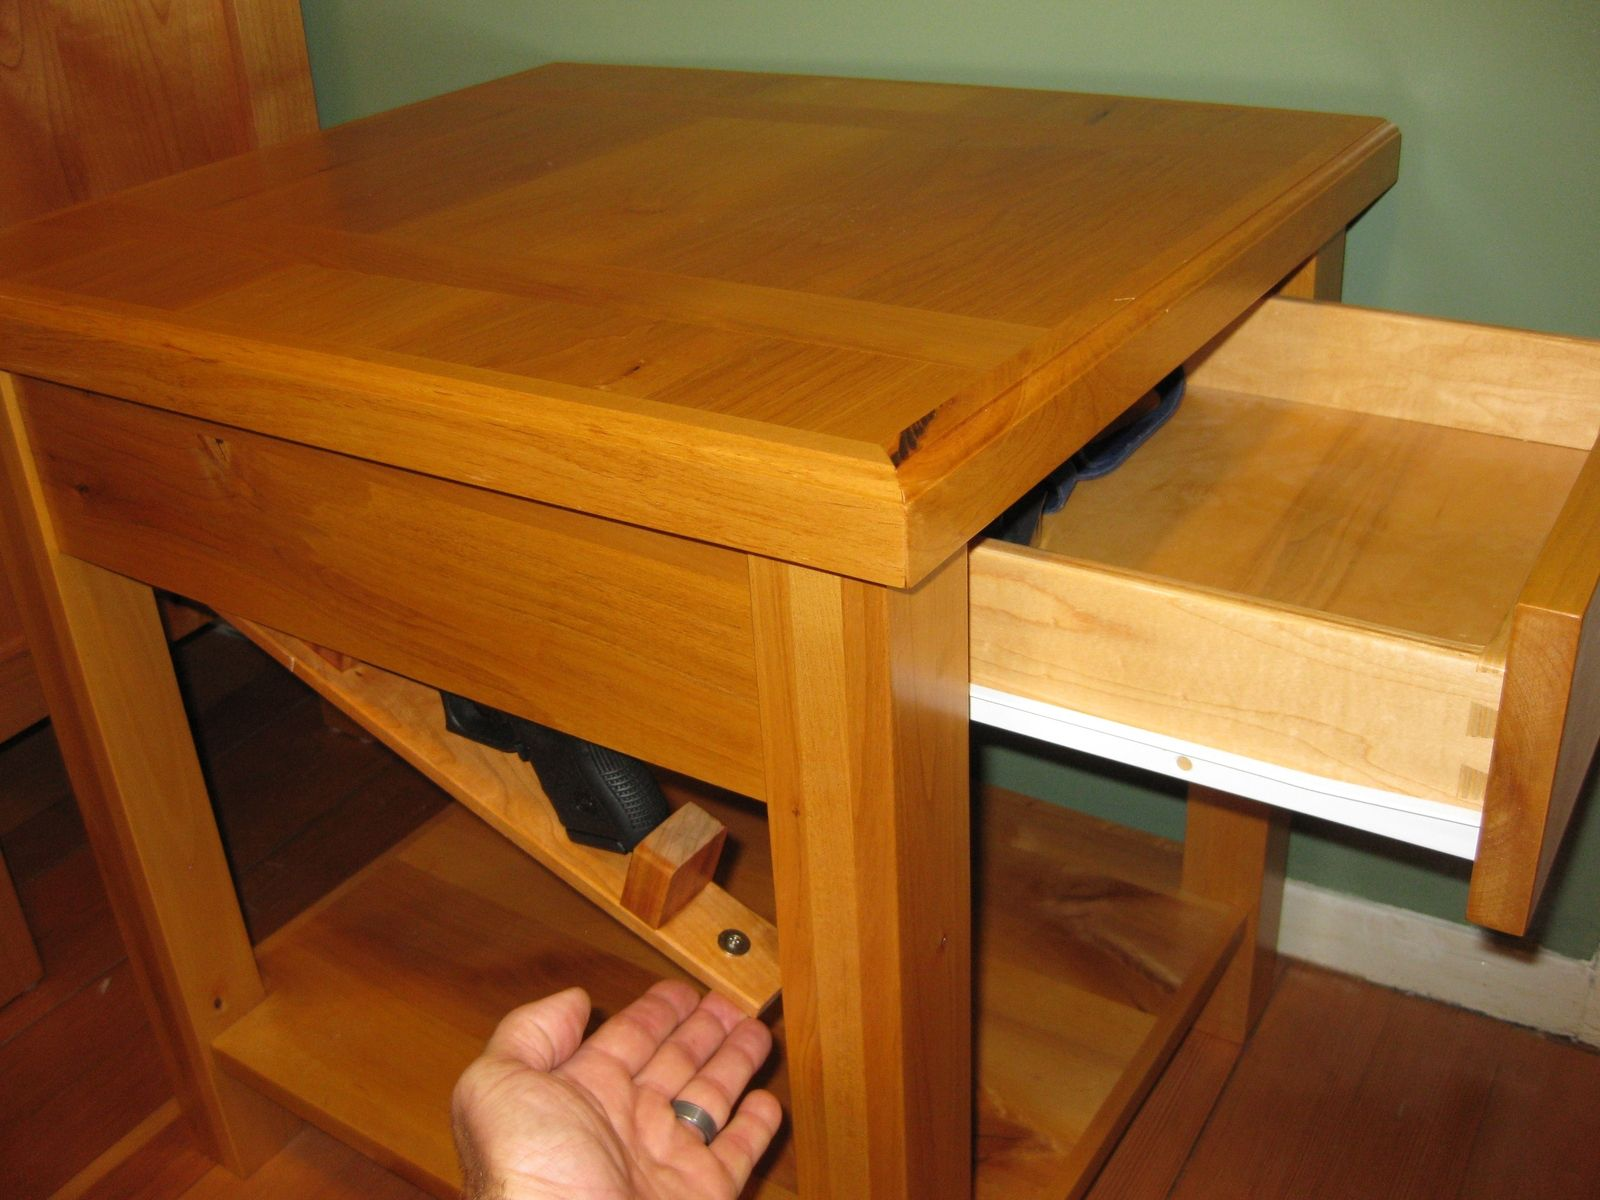 Bedside Table With Secret Compartment